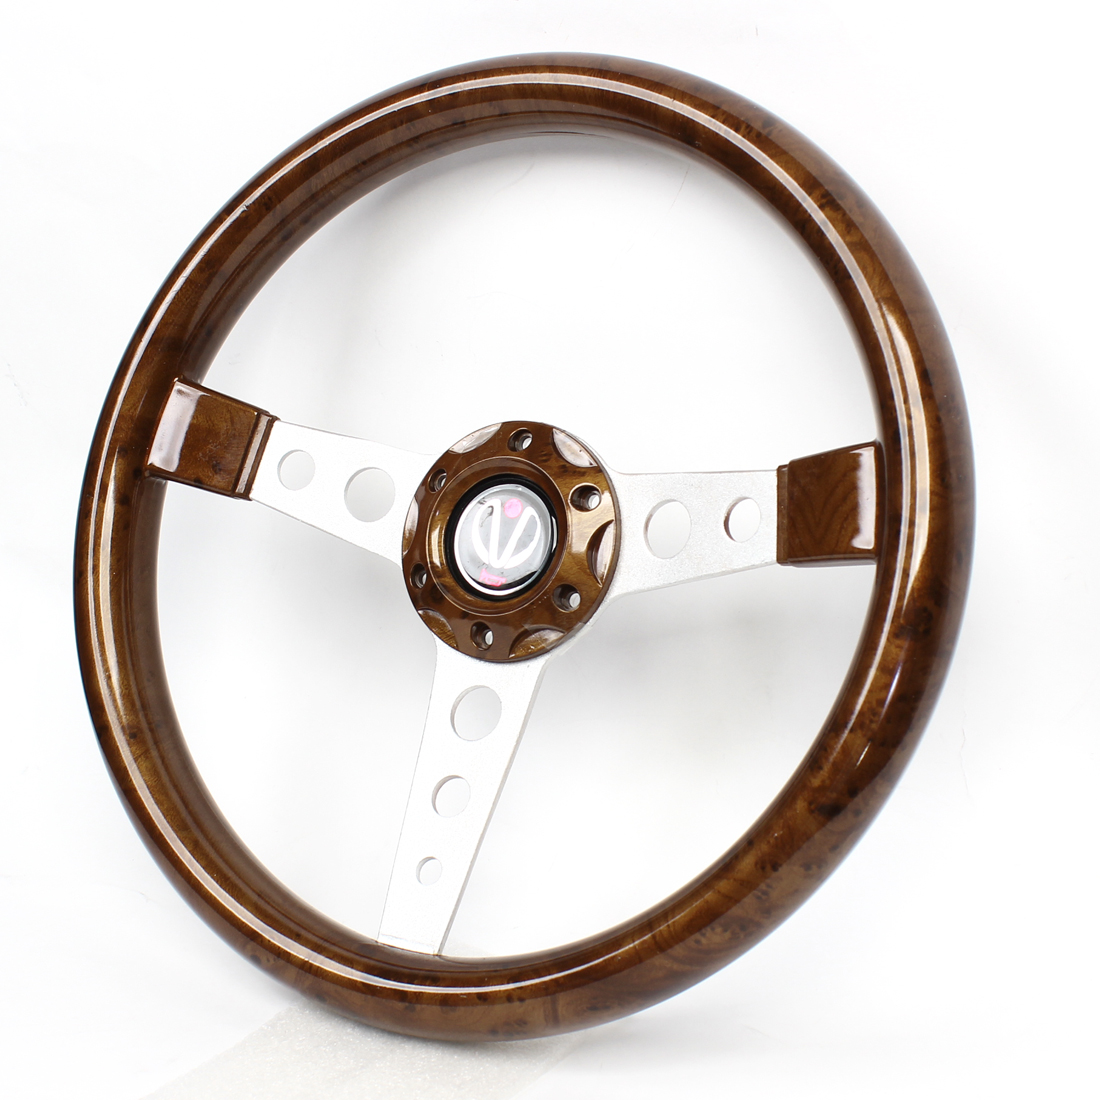 34.5cm Dia Brown Plastic Antislip Racing Steering Wheel for Car